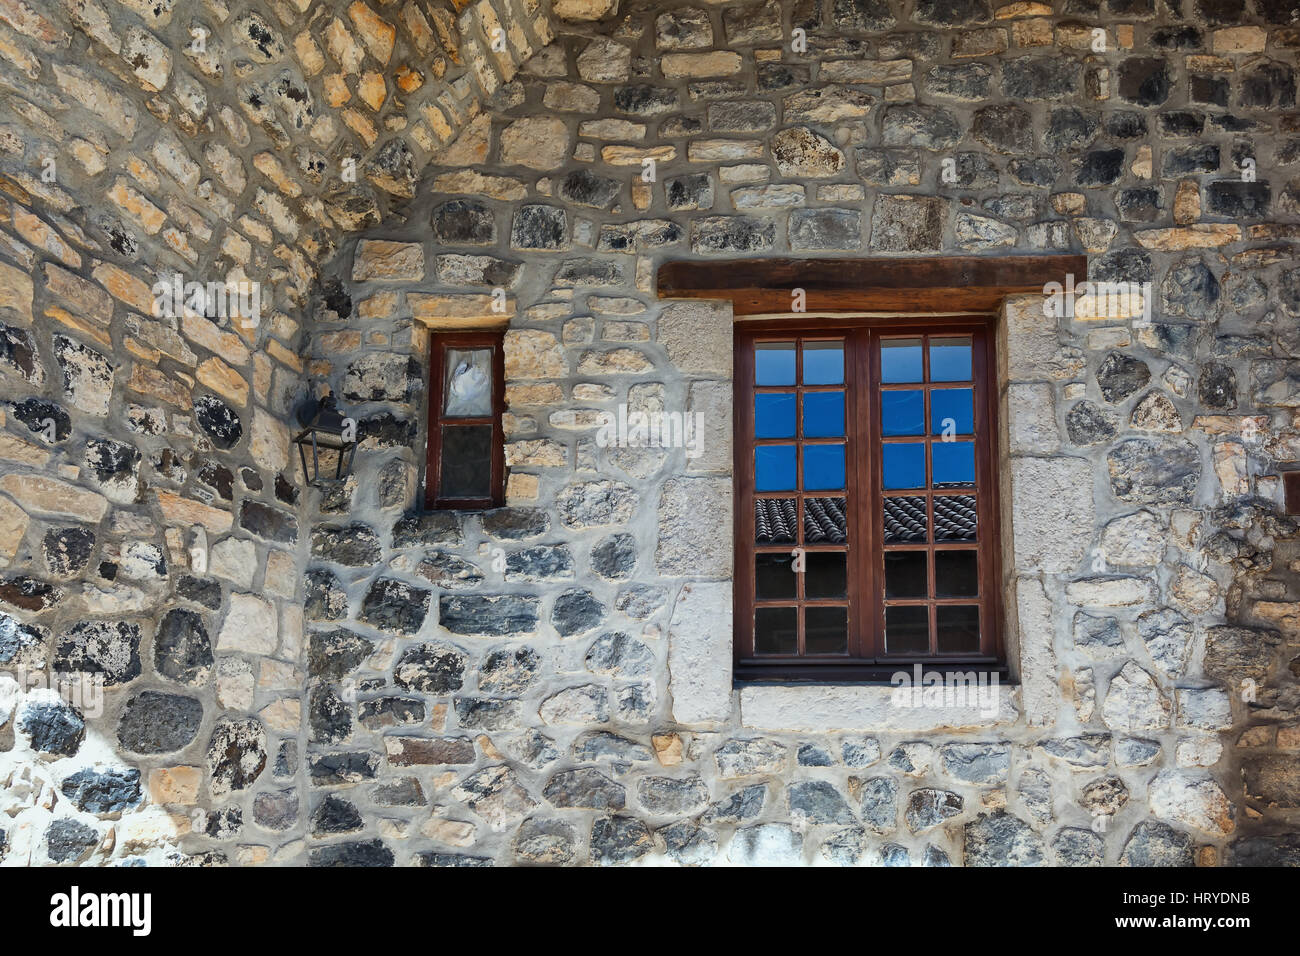 Large and small window in an old basalt wall. - Stock Image